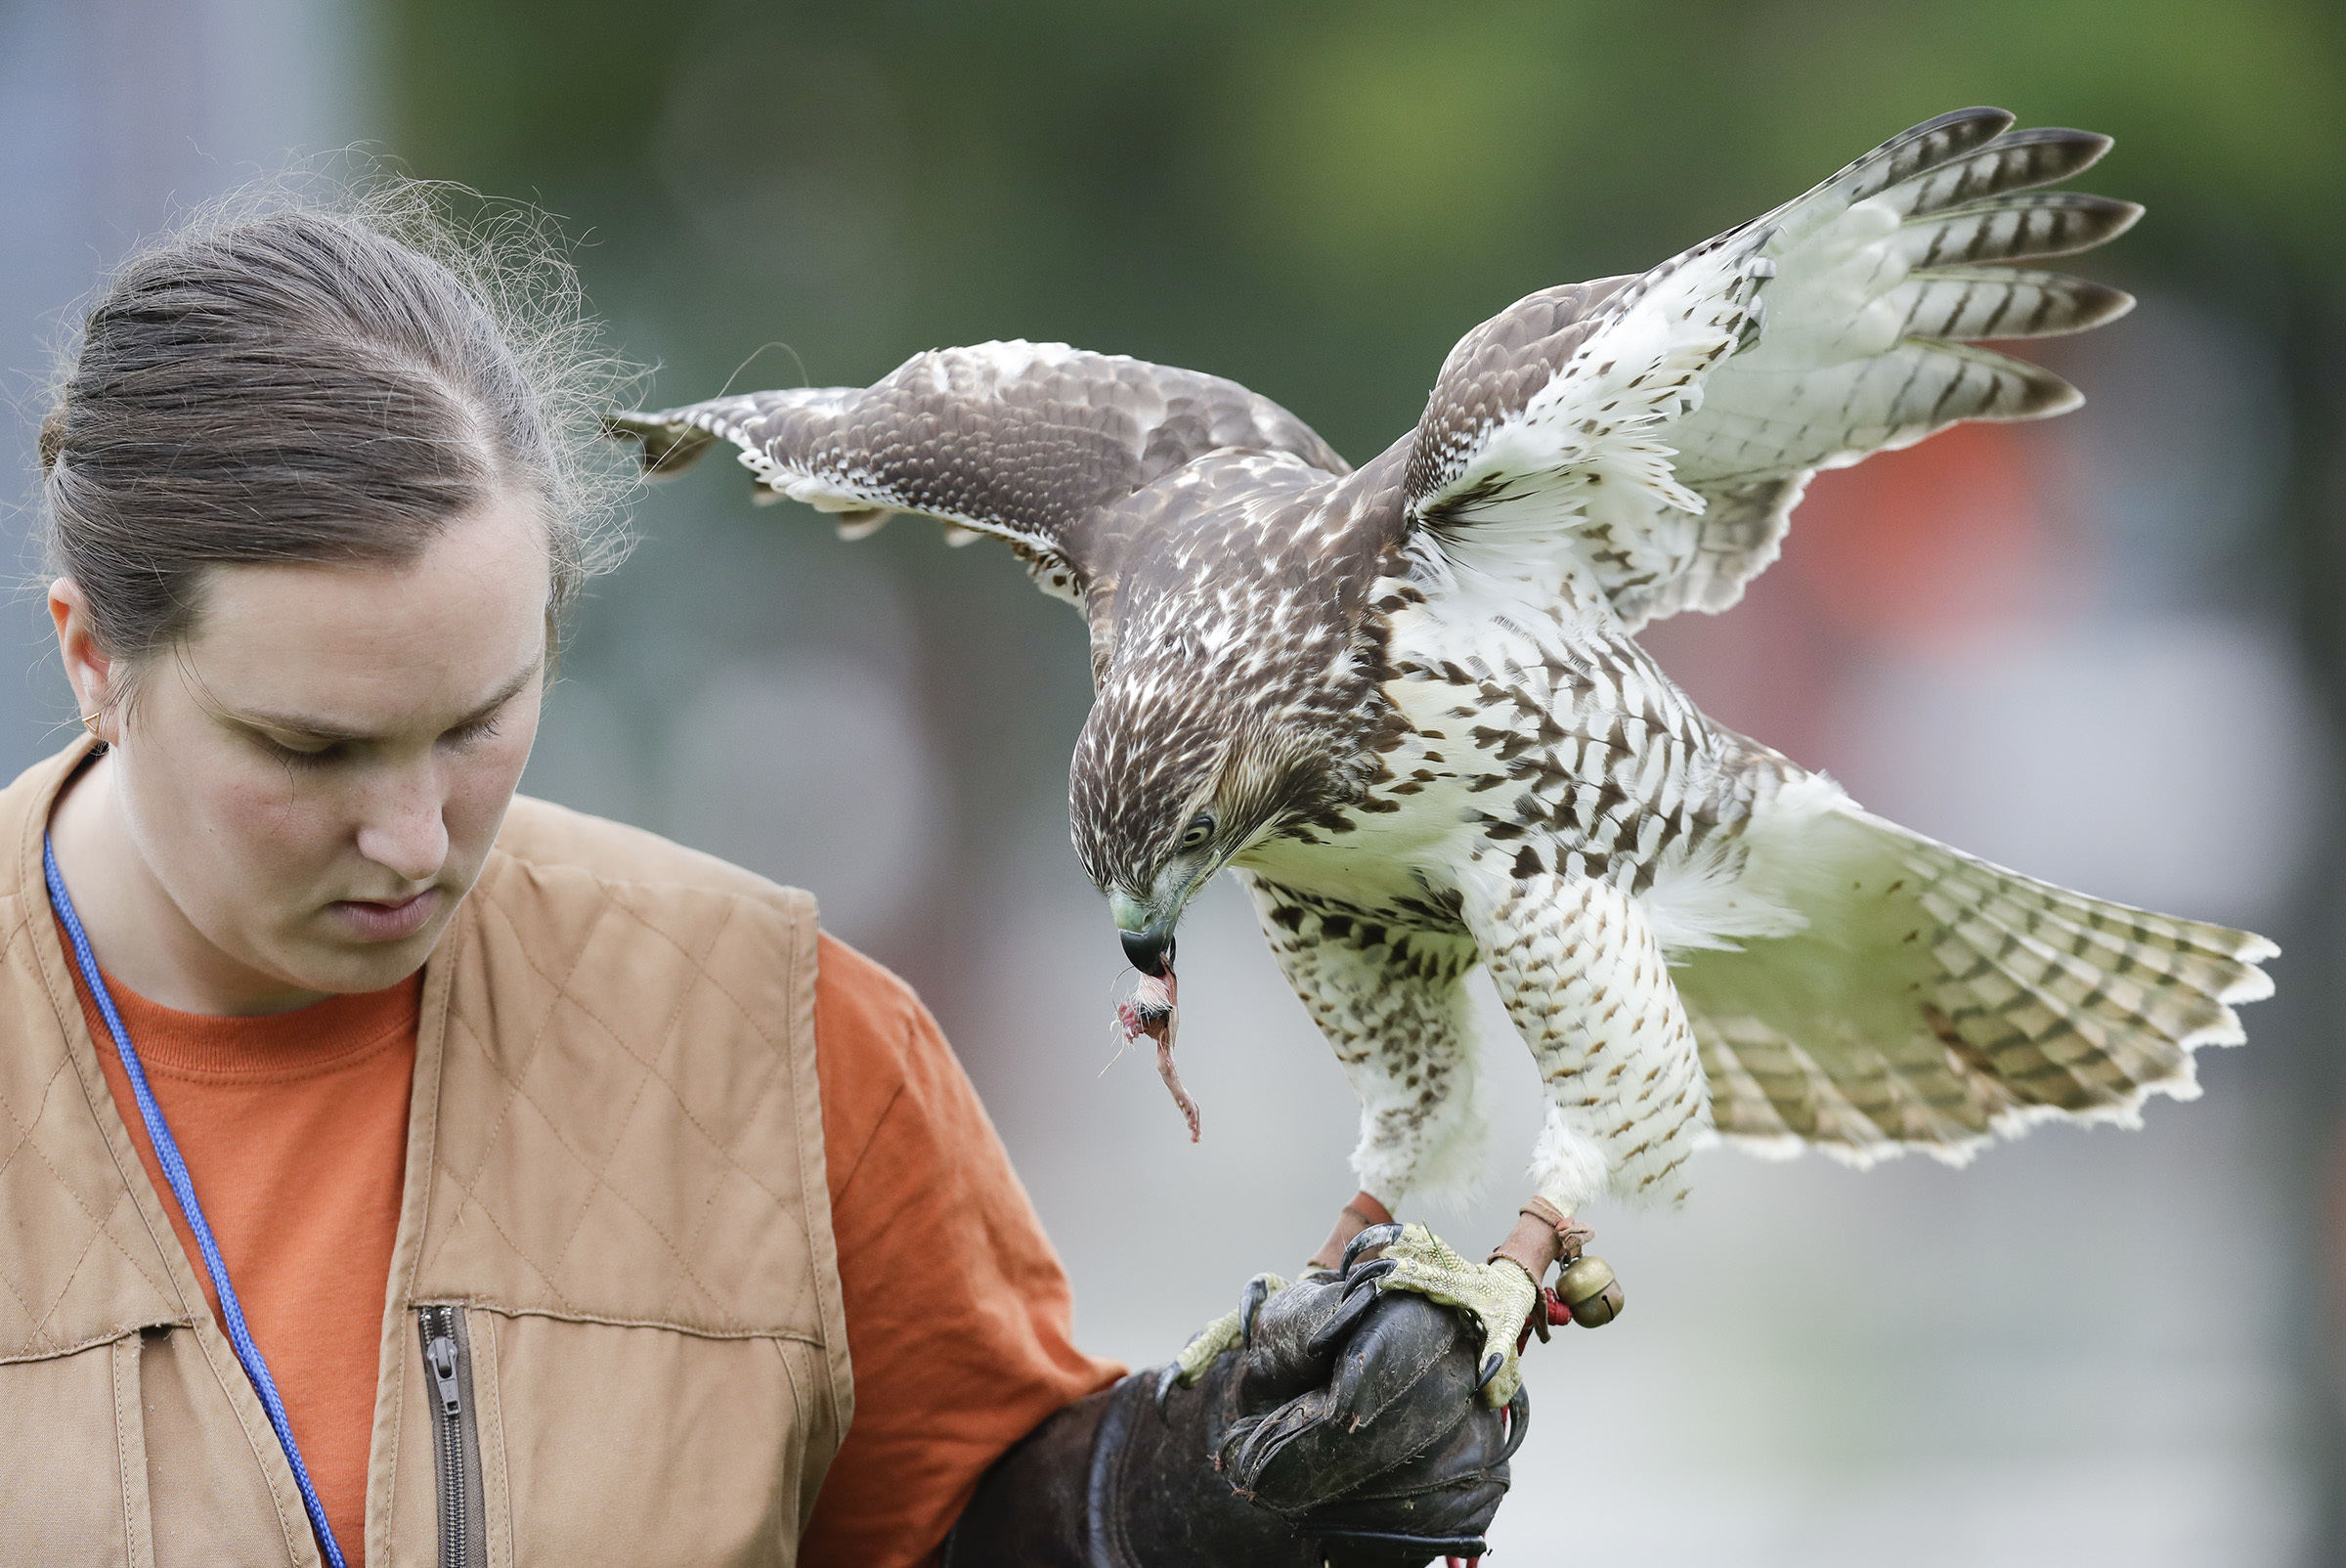 Red-tailed hawk Addy eats a piece of meat during a training session with licensed falconer Courtney Douds at the 48th & Woodland Playground in Southwest Philadelphia on Friday, September 14, 2018. YONG KIM / Staff Photographer